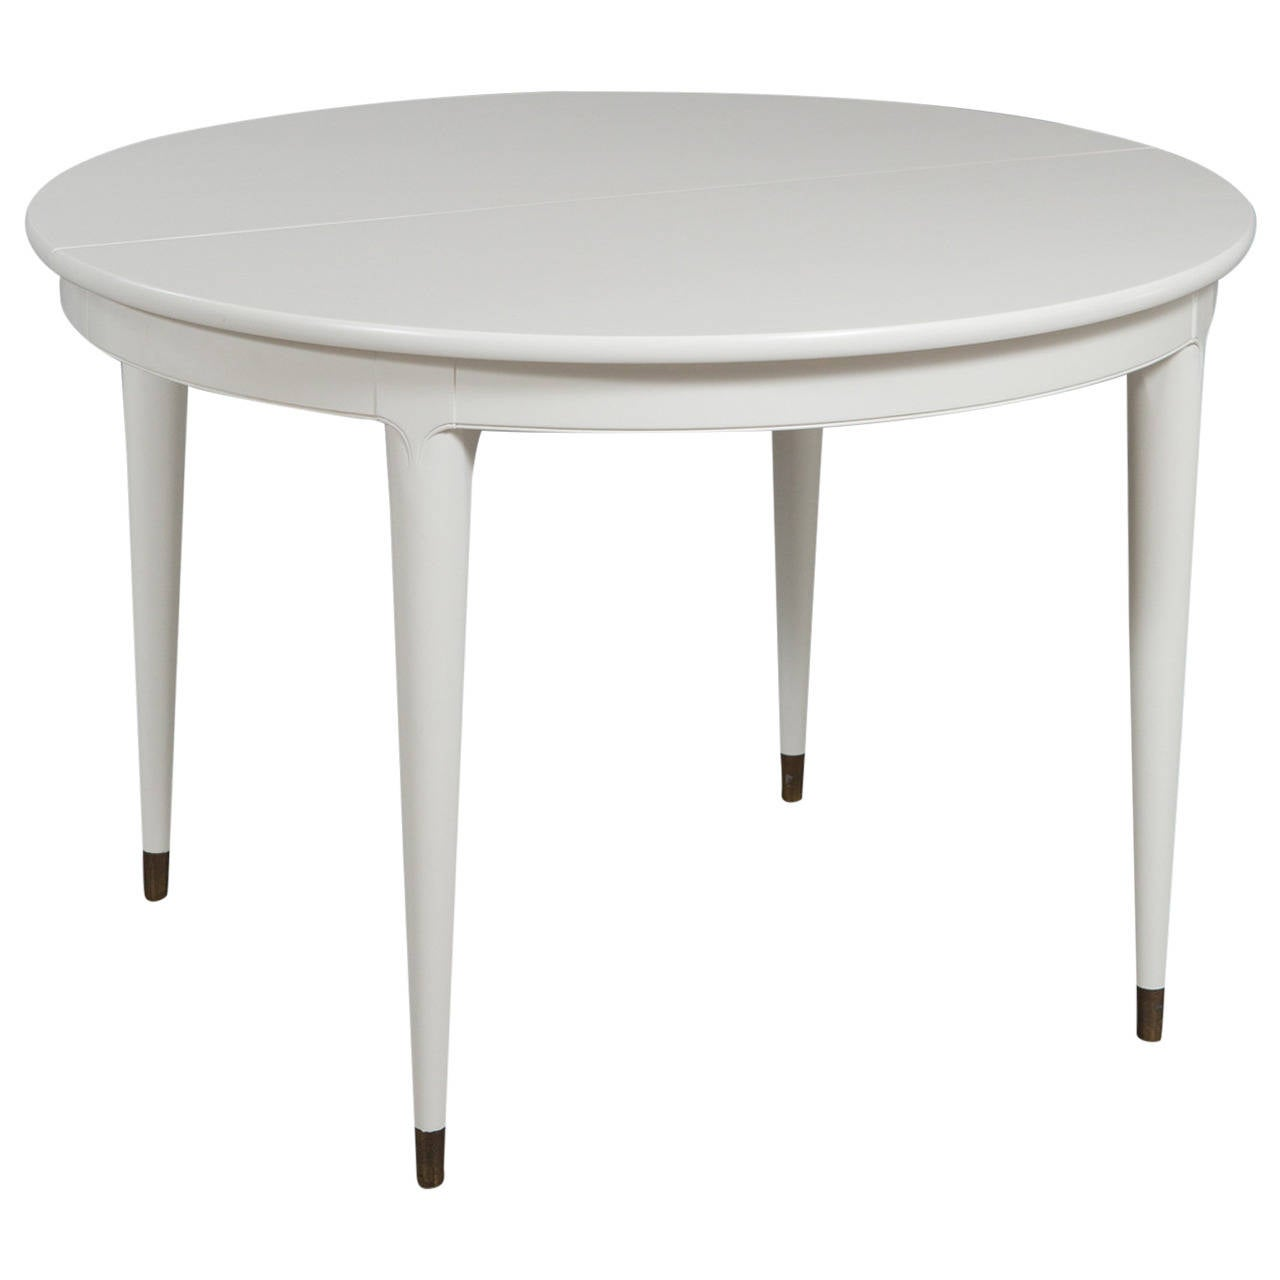 Round widdicomb dining table with two leaves at 1stdibs for Dining room table 2 leaves